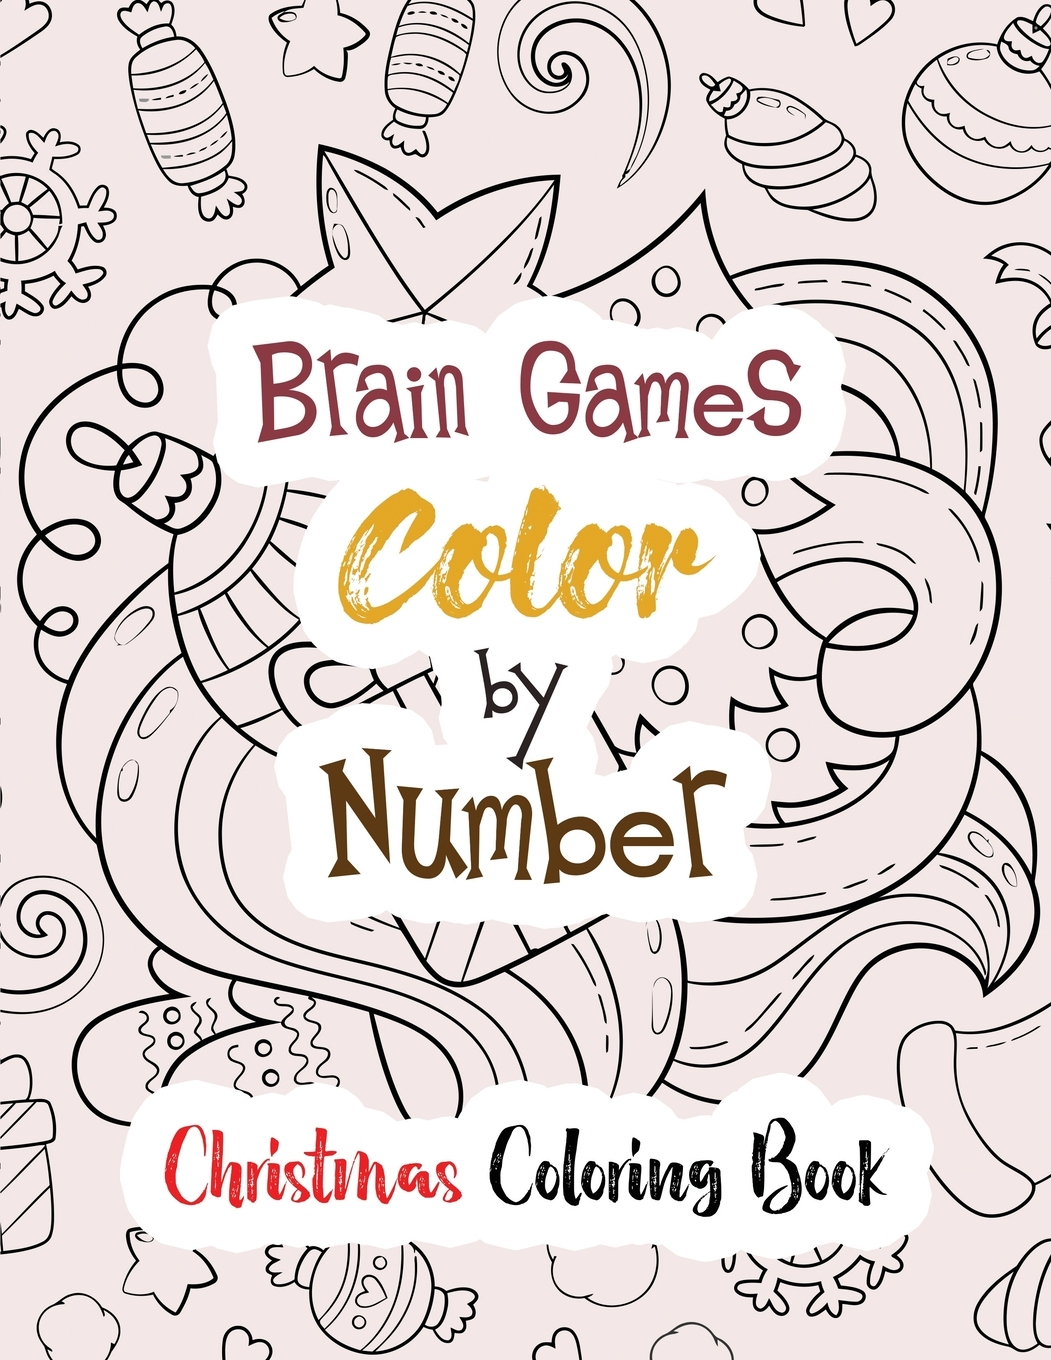 - Brain Games Color By Number : Christmas Coloring Book, Color By Number Books,  A Christian Coloring Book Gift Card Alternative, Guided Coloring Book For  Beginners (Paperback) - Walmart.com - Walmart.com